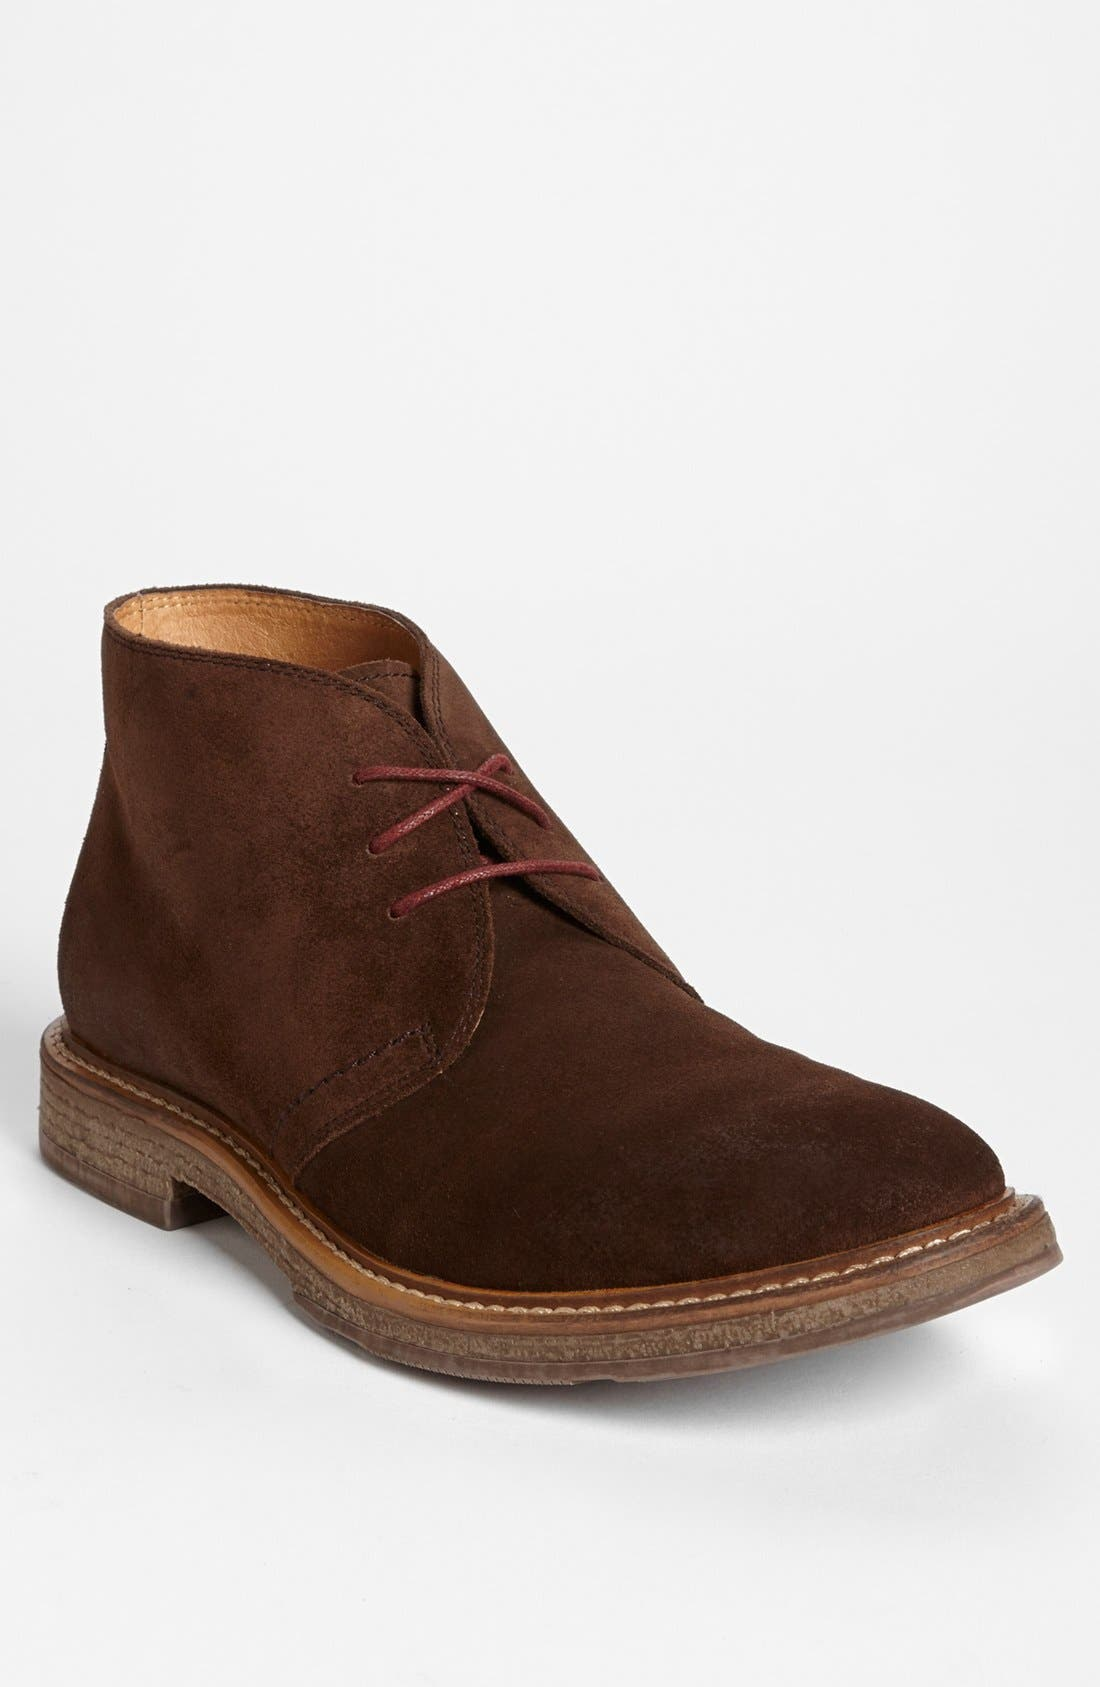 'Canyon' Chukka Boot,                             Main thumbnail 4, color,